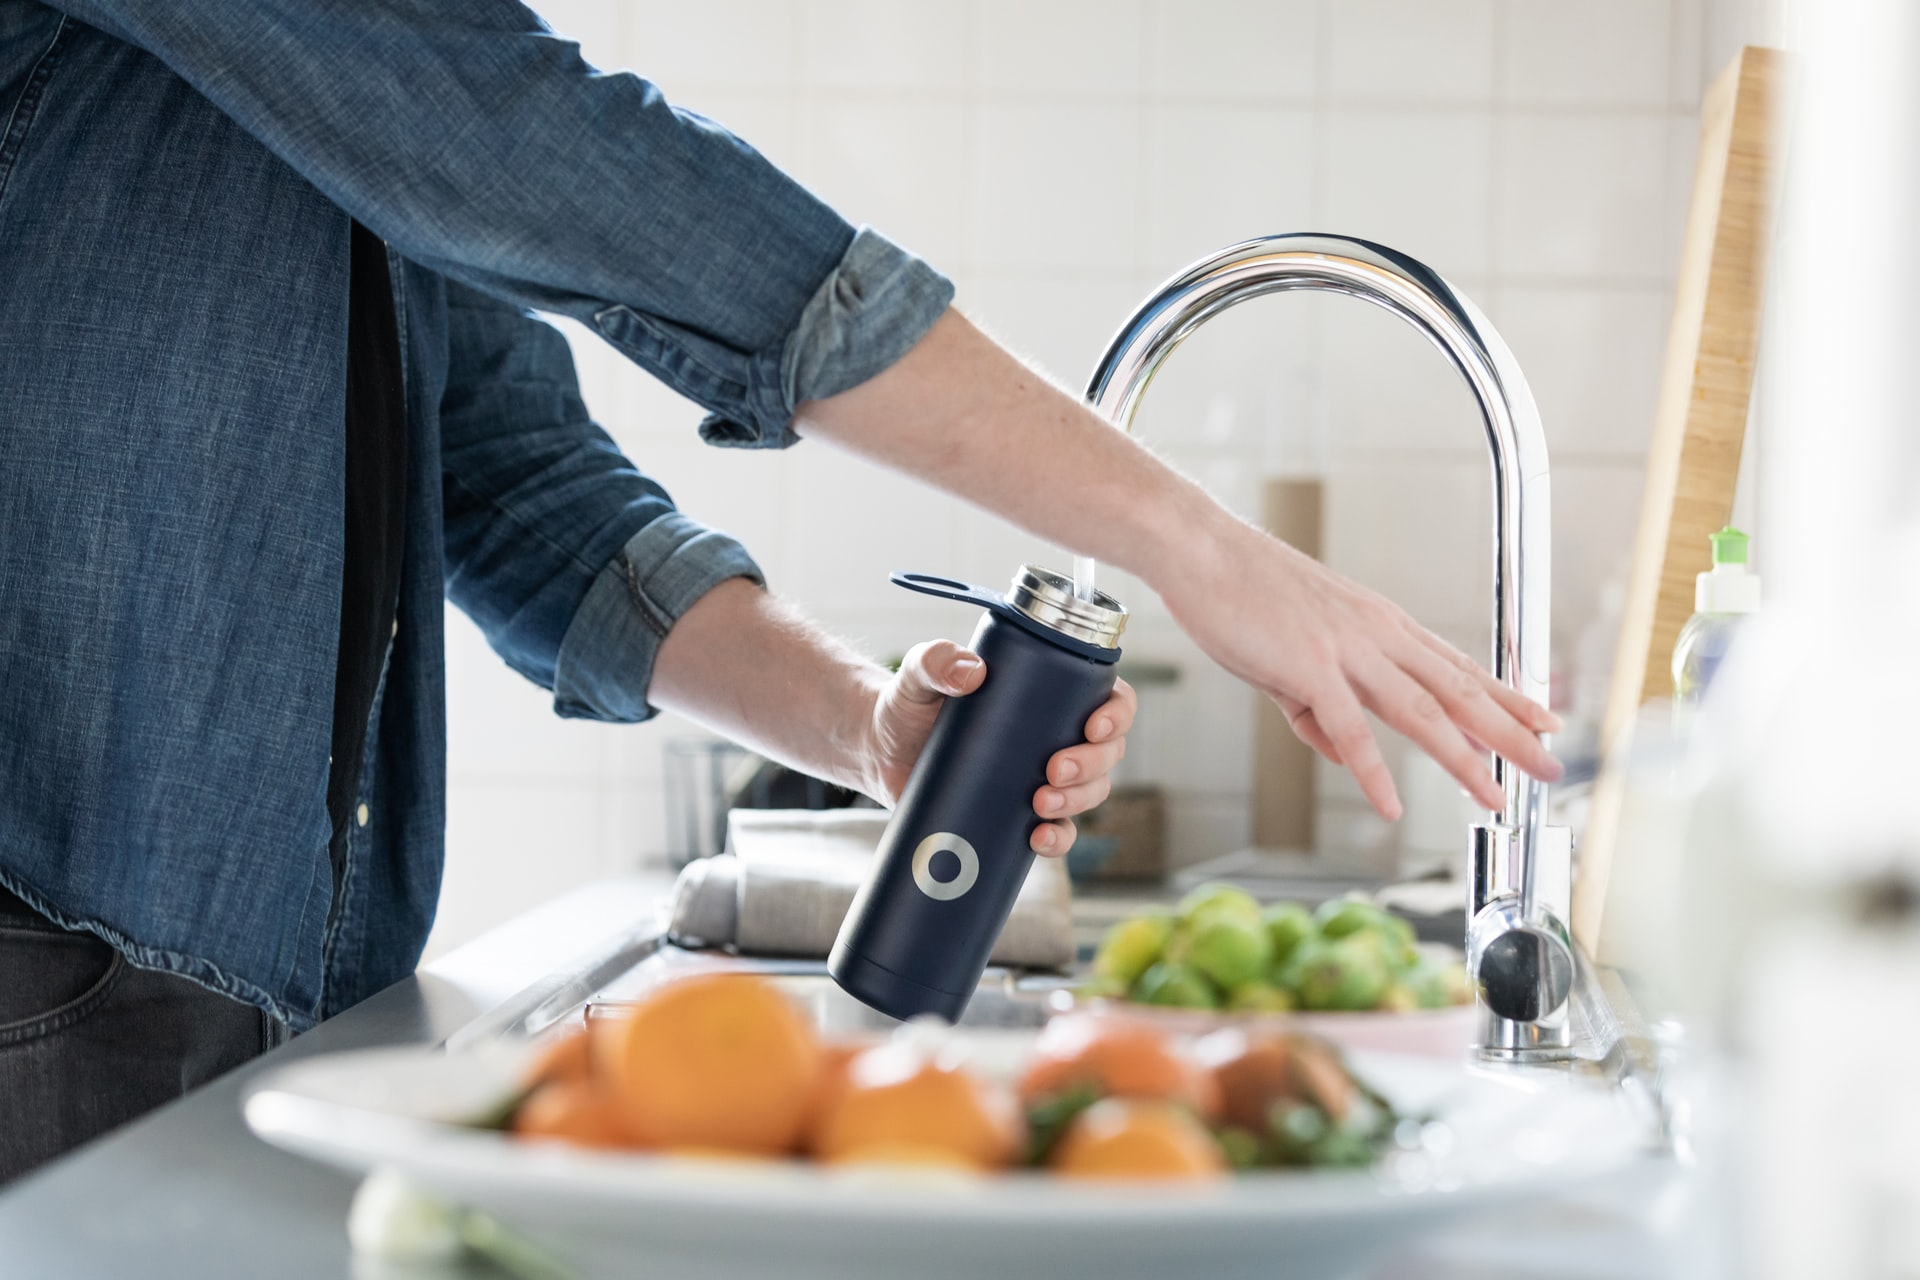 Do You Need a Water Softener If You Have Reverse Osmosis?